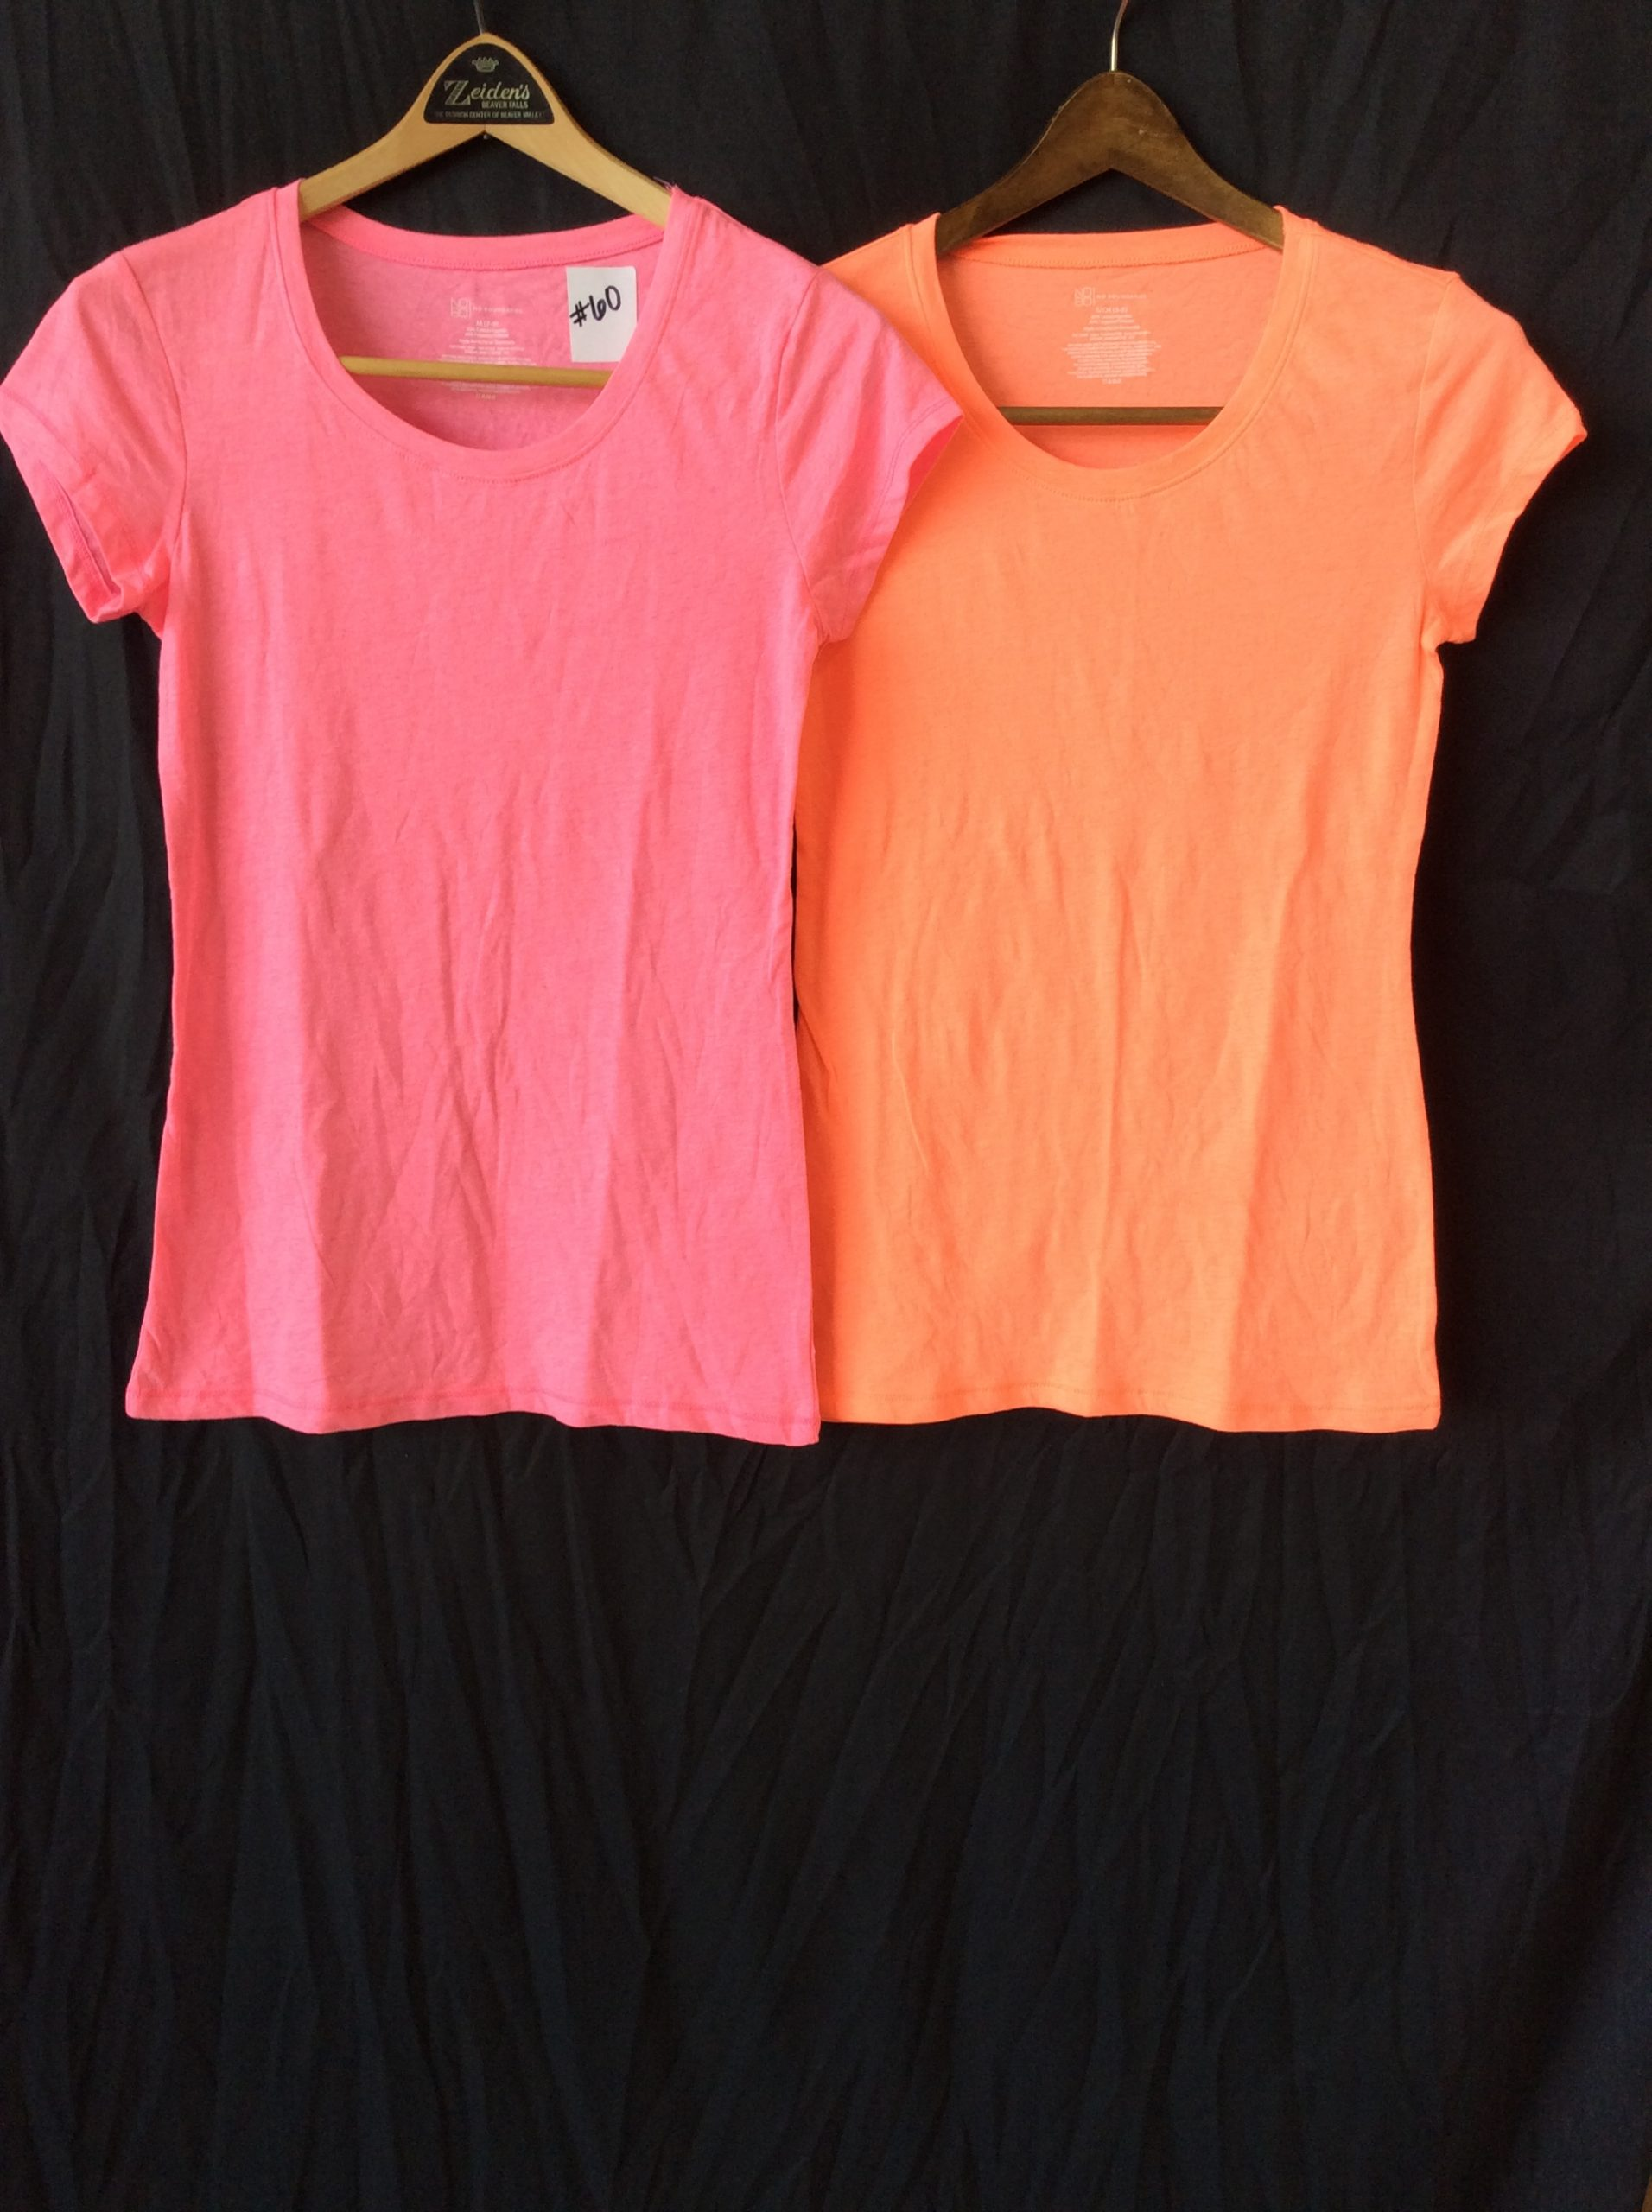 Women's scoop neck (set of 2, one pink, one orange), size small